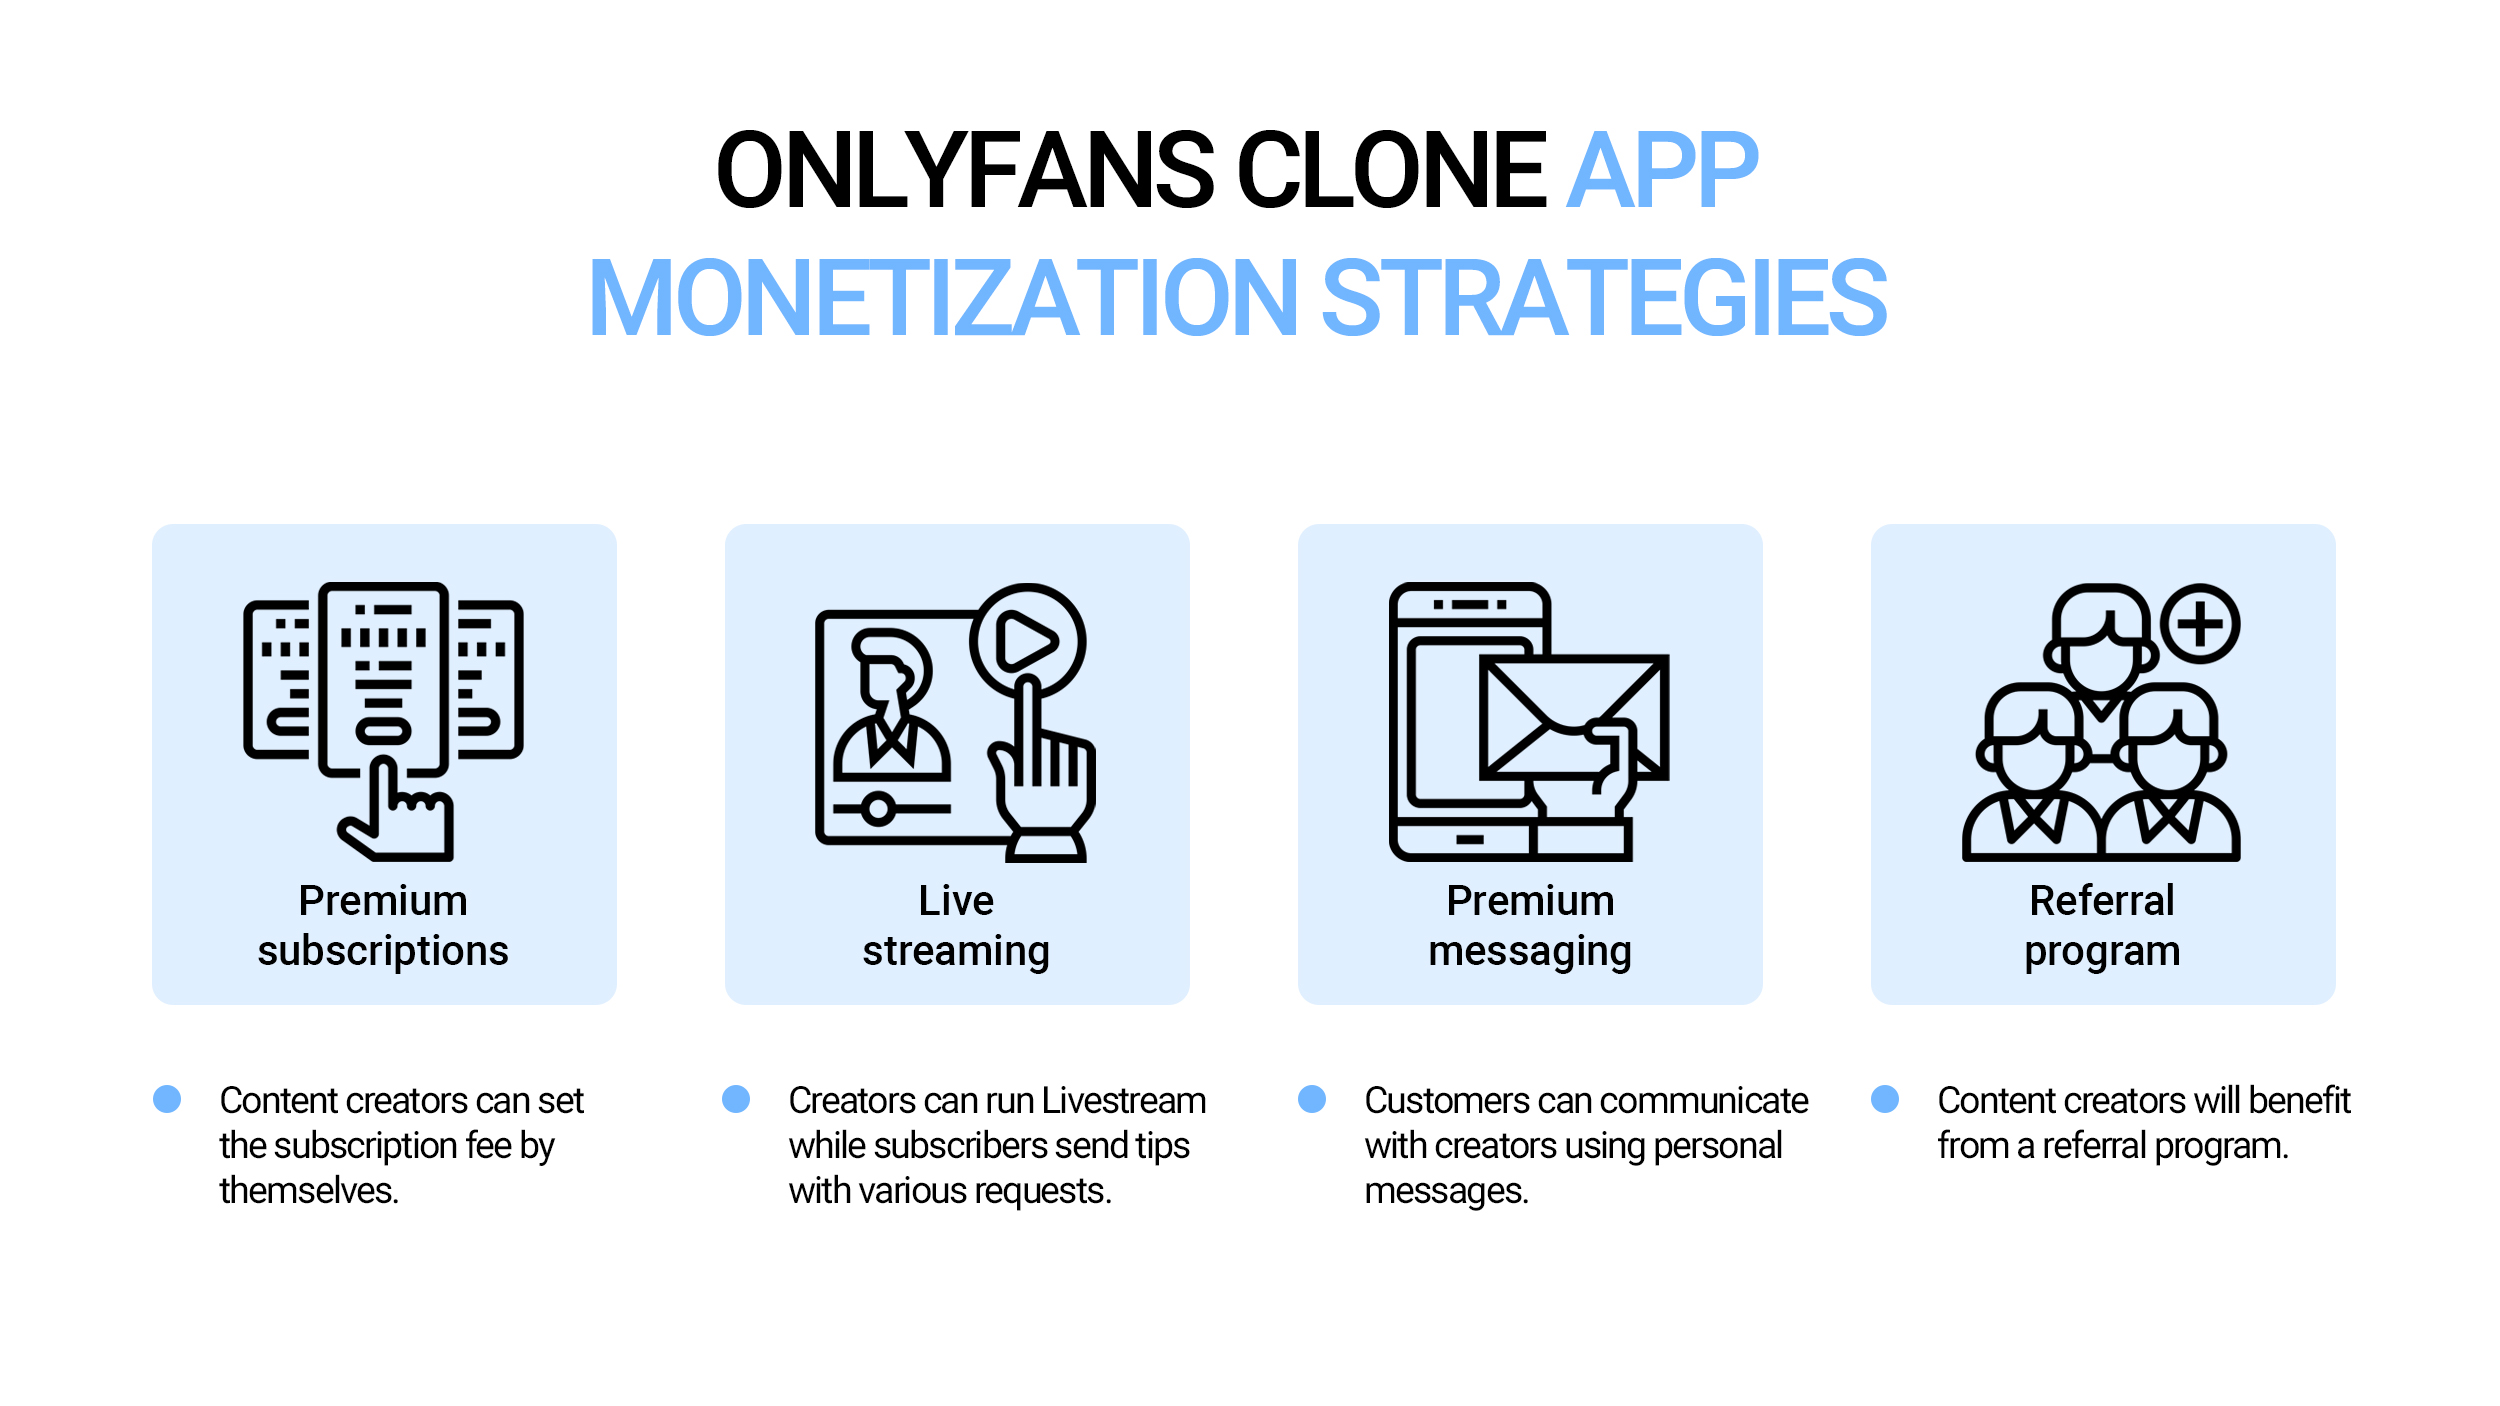 OnlyFans clone app monetization strategies